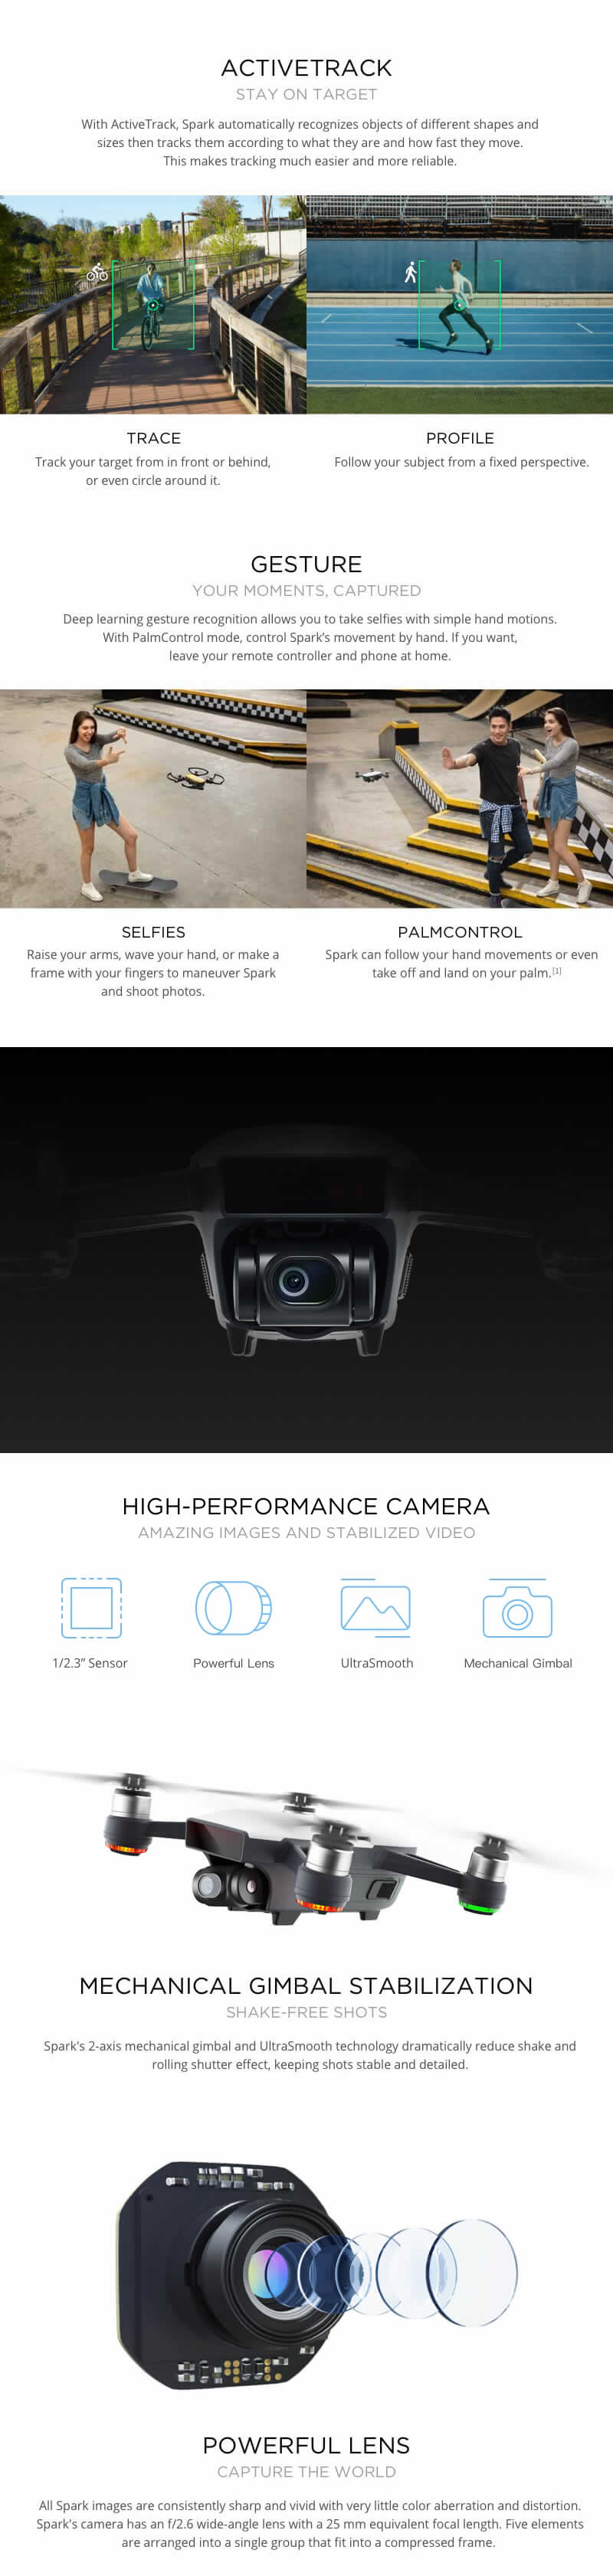 DJI Spark Description 2